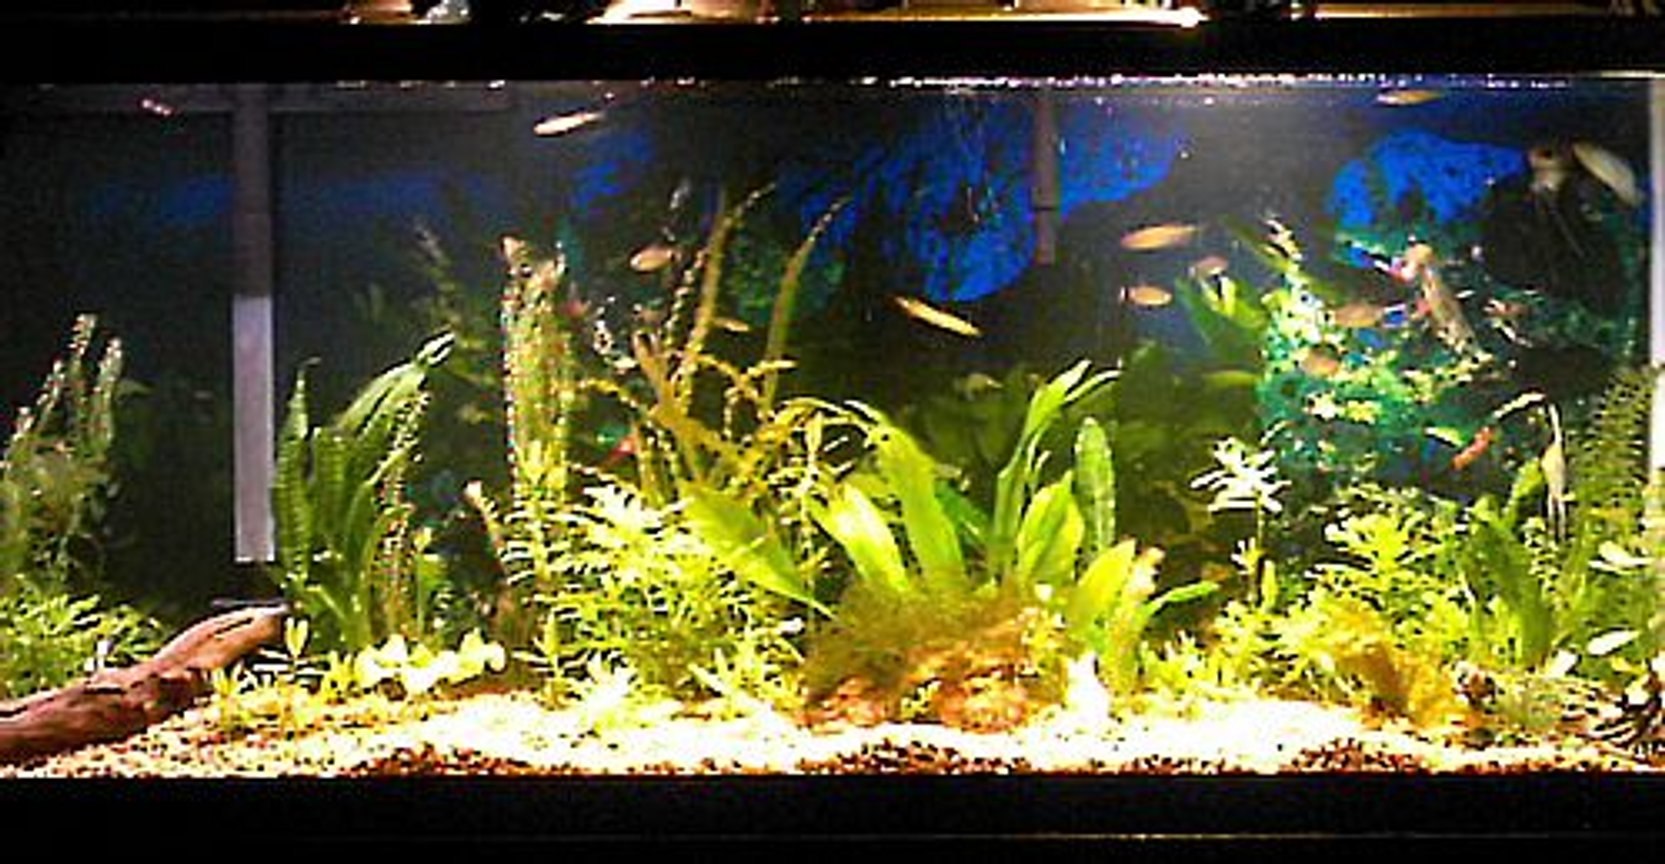 55 gallons planted tank (mostly live plants and fish) - Some plants, 4 Angelfish, 6 redeye tetras, 5 zebra danios, 1 three spot gourami, 1 CAE Plants include: Sword, wisteria, banana plant, Naja, java fern, java moss, a few misc.